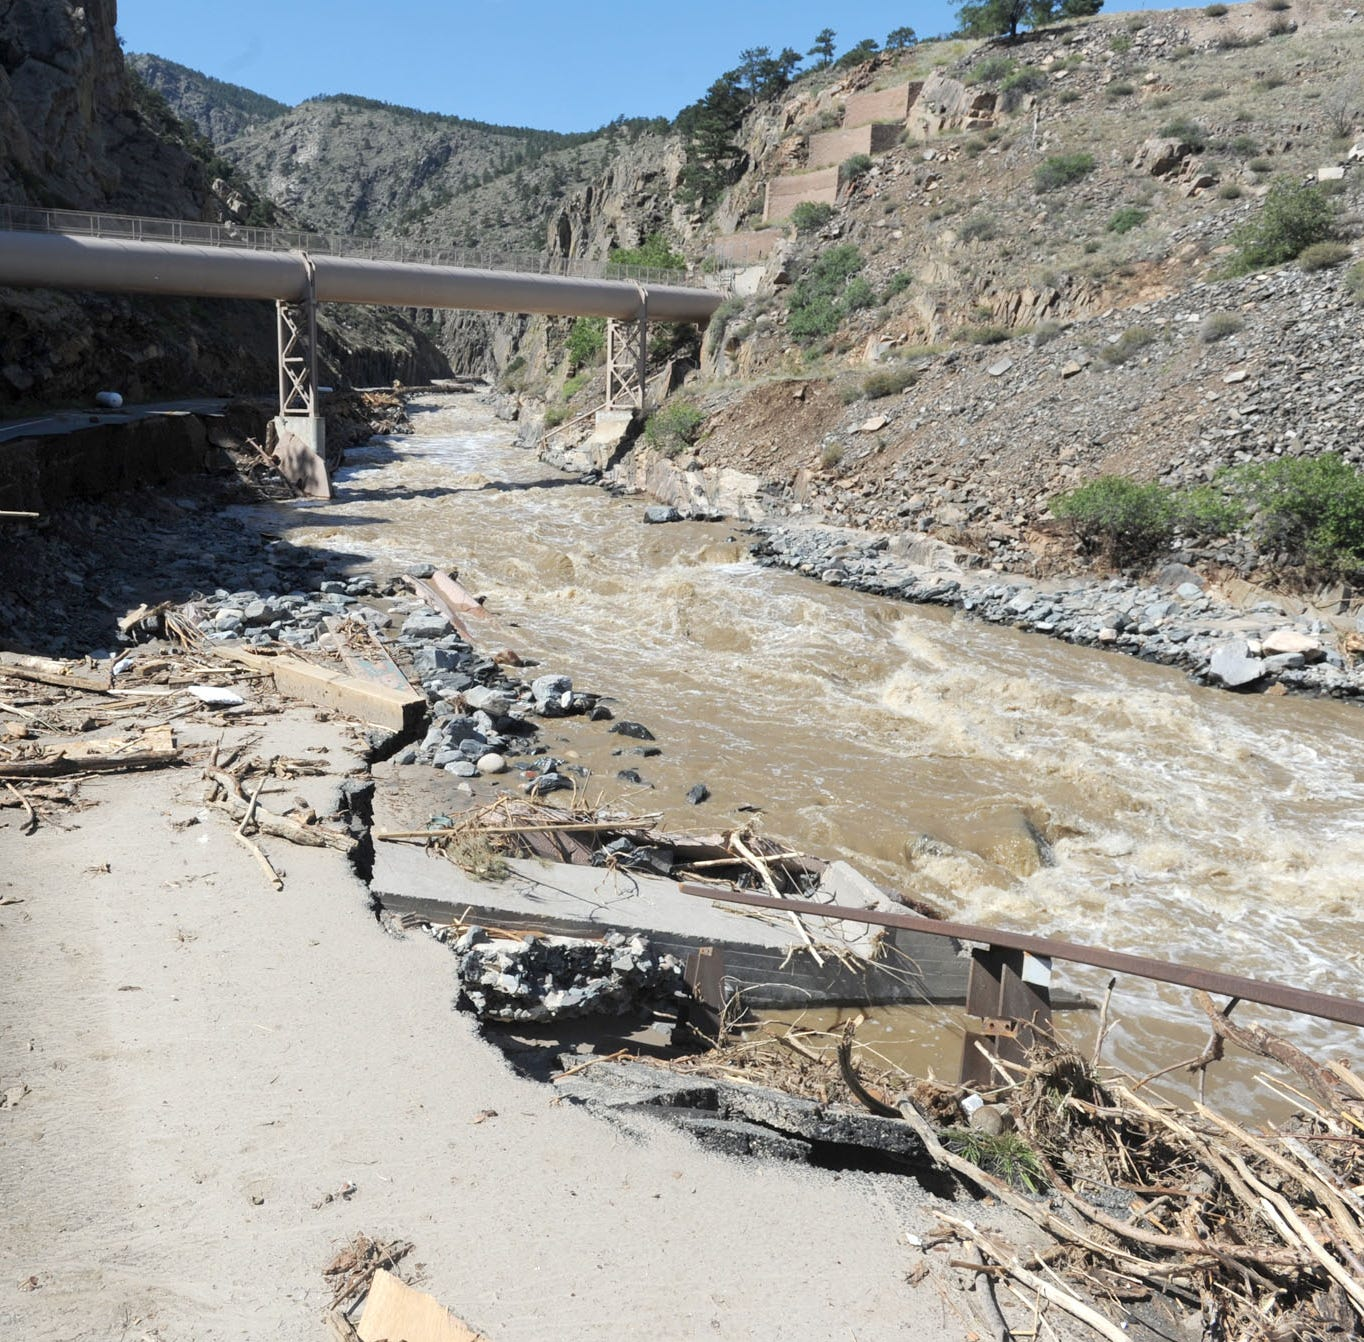 Nearly 6 years after Big Thompson flood, FEMA still hasn't funded road, bridge repairs